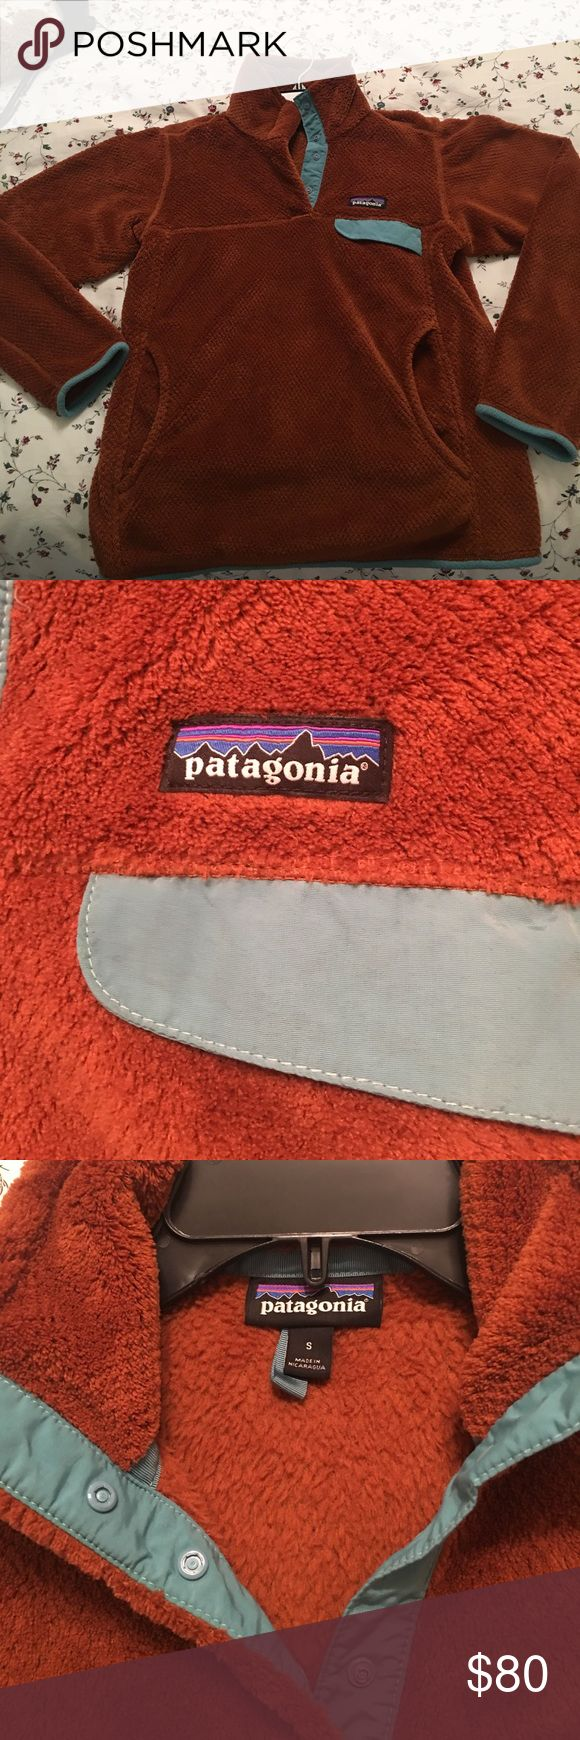 Patagonia NWOT Pullover NWOT  dark rusty color almost brown but a tint of orange, super super pretty color Patagonia Other